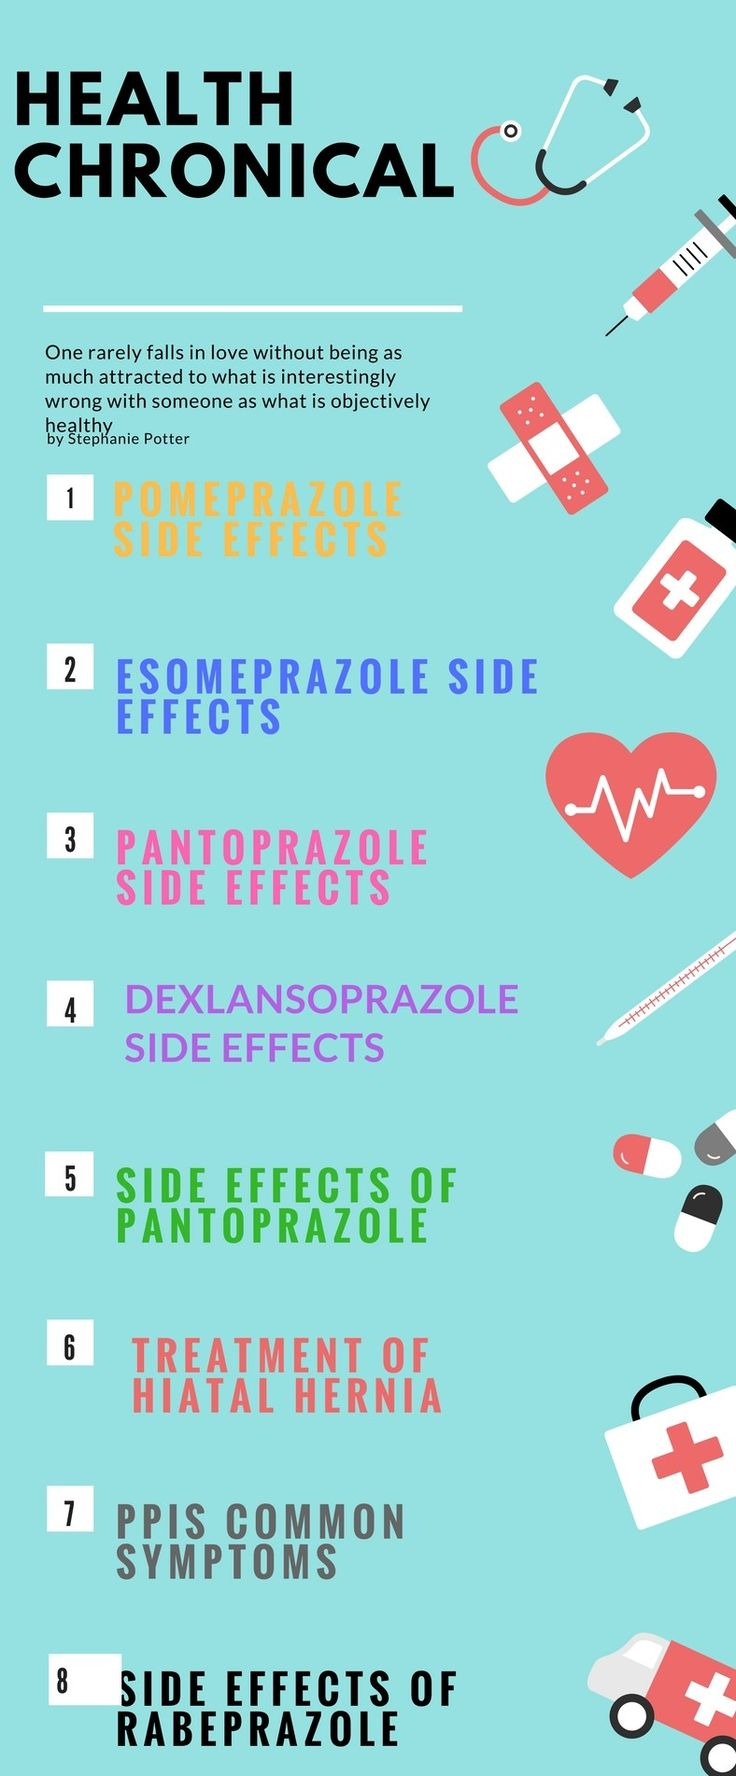 Escitalopram side effects australia.doc - To Get The Fully Potential Side Effects Of Esomeprazole Raberprazole Omeprazole Includes Common And